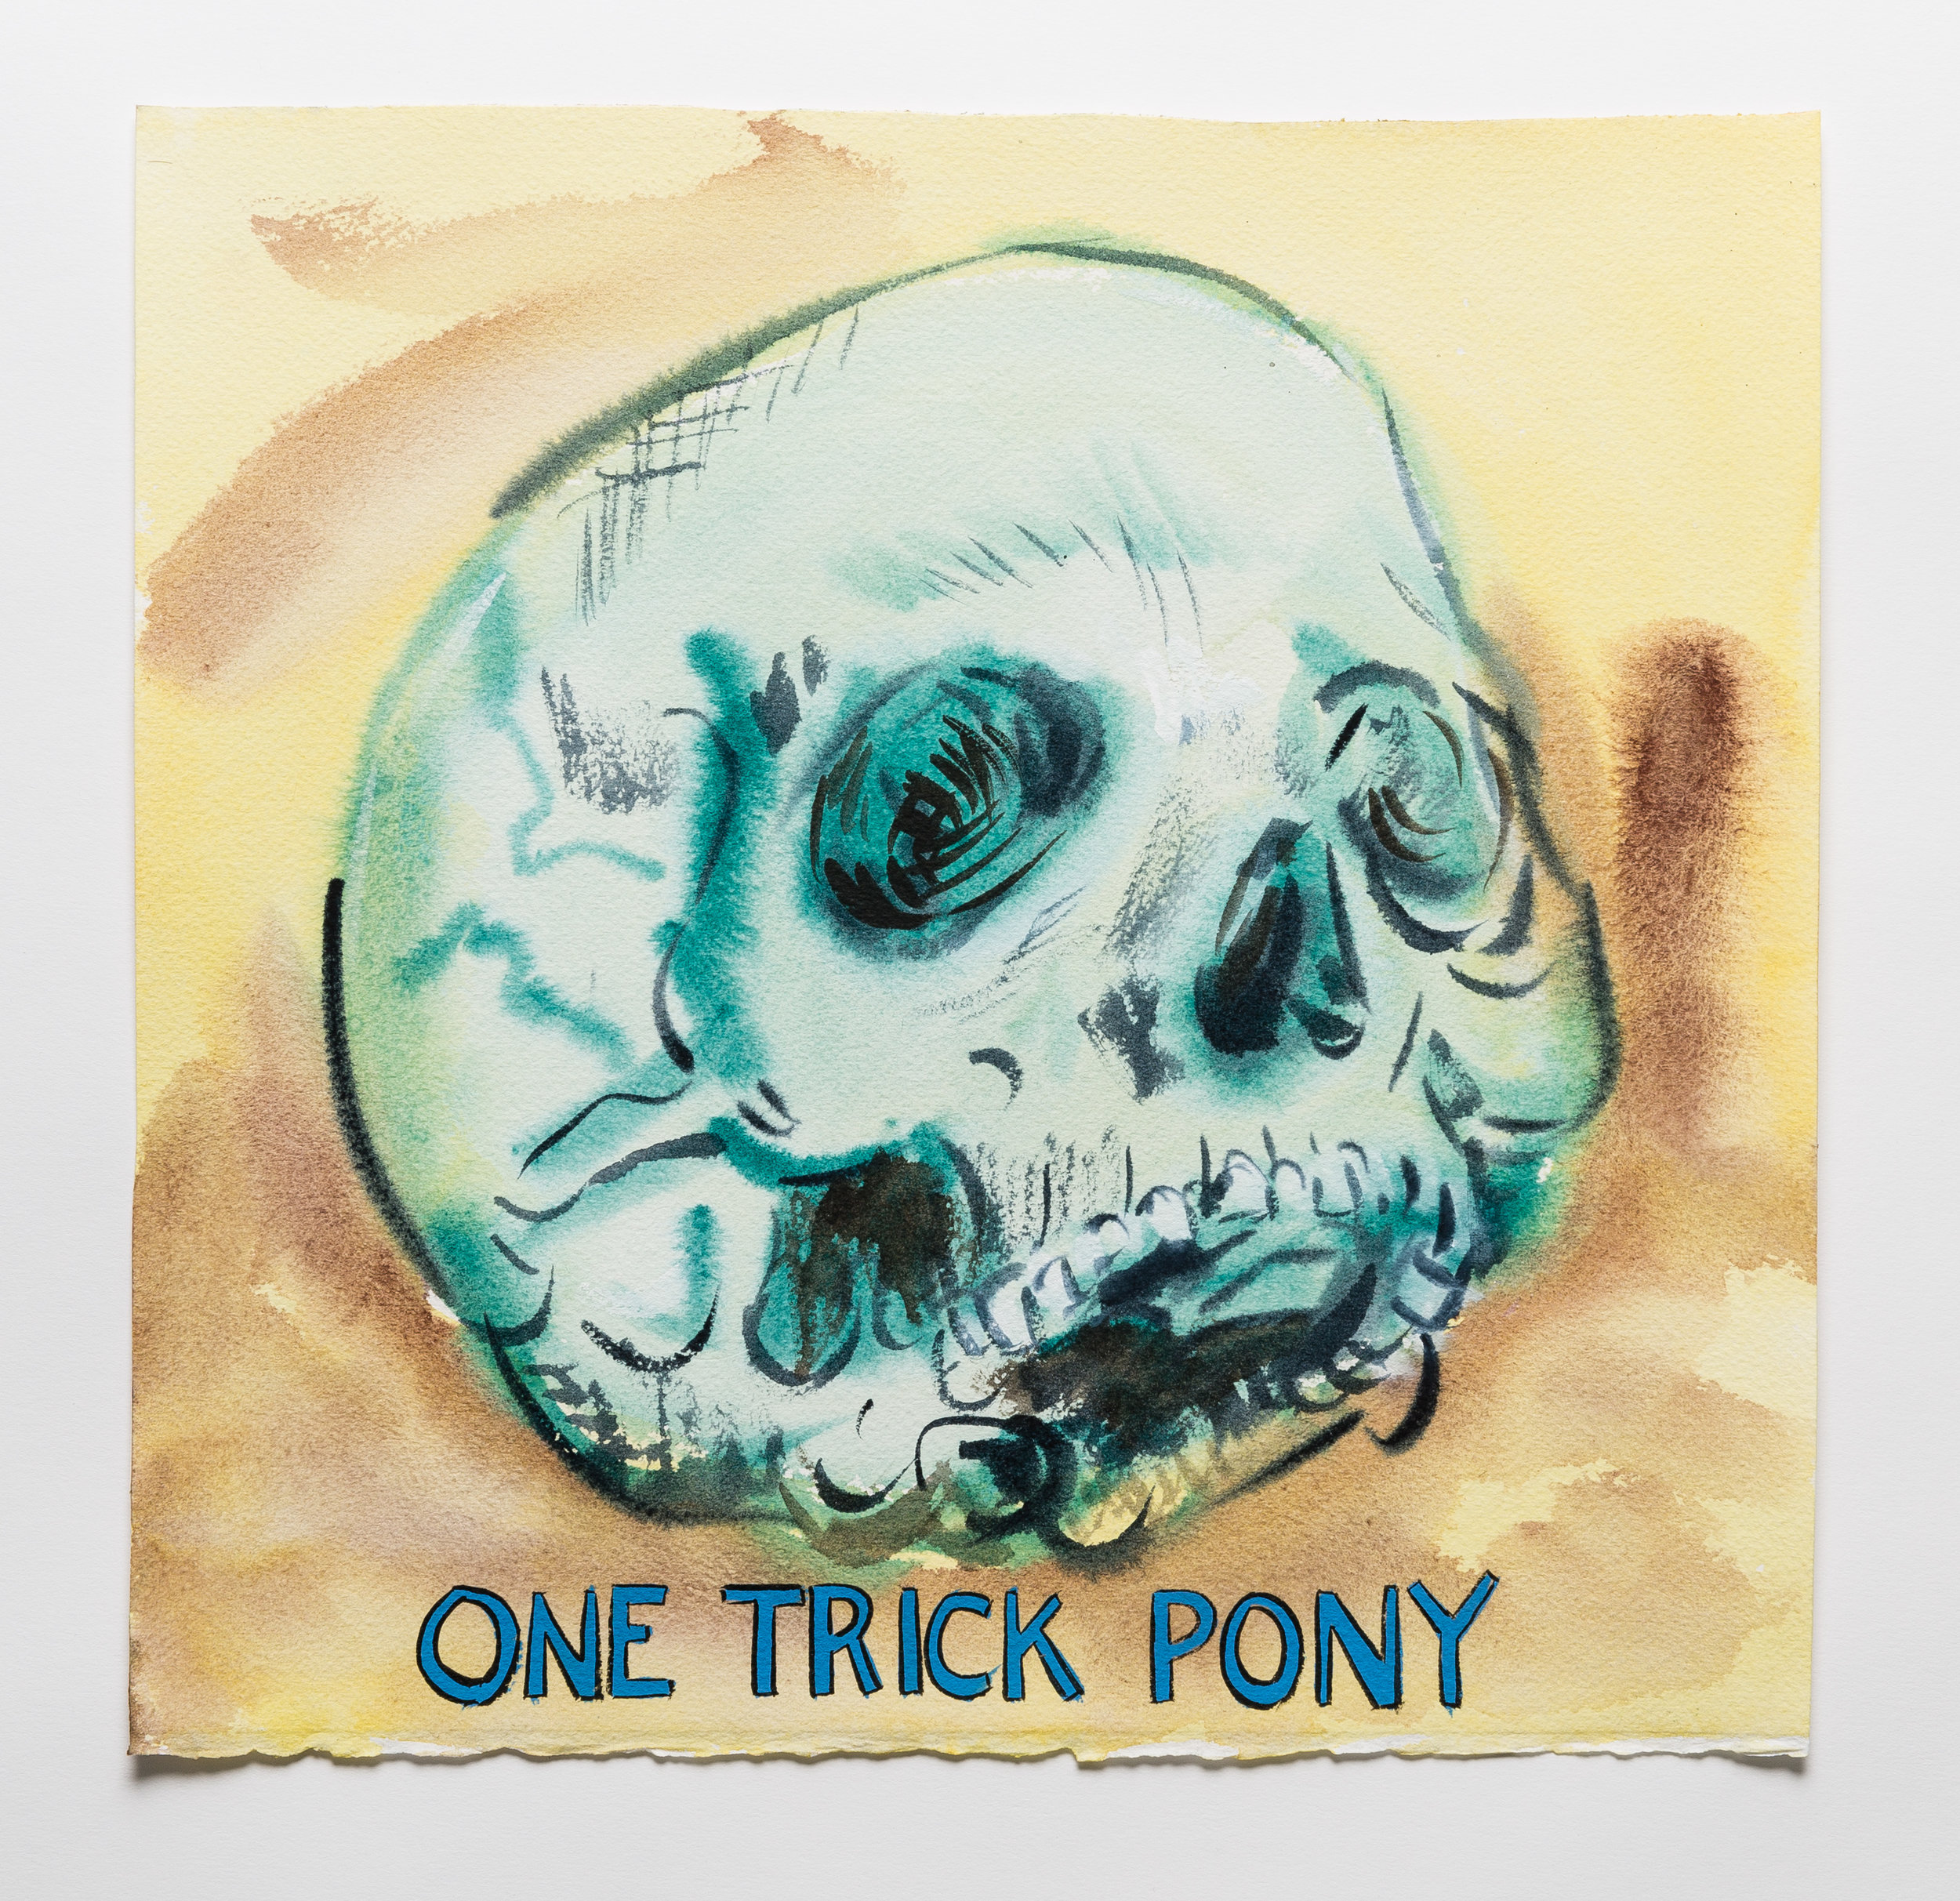 One Trick Pony   2015 watercolor, gouache and ink on paper 11x11""